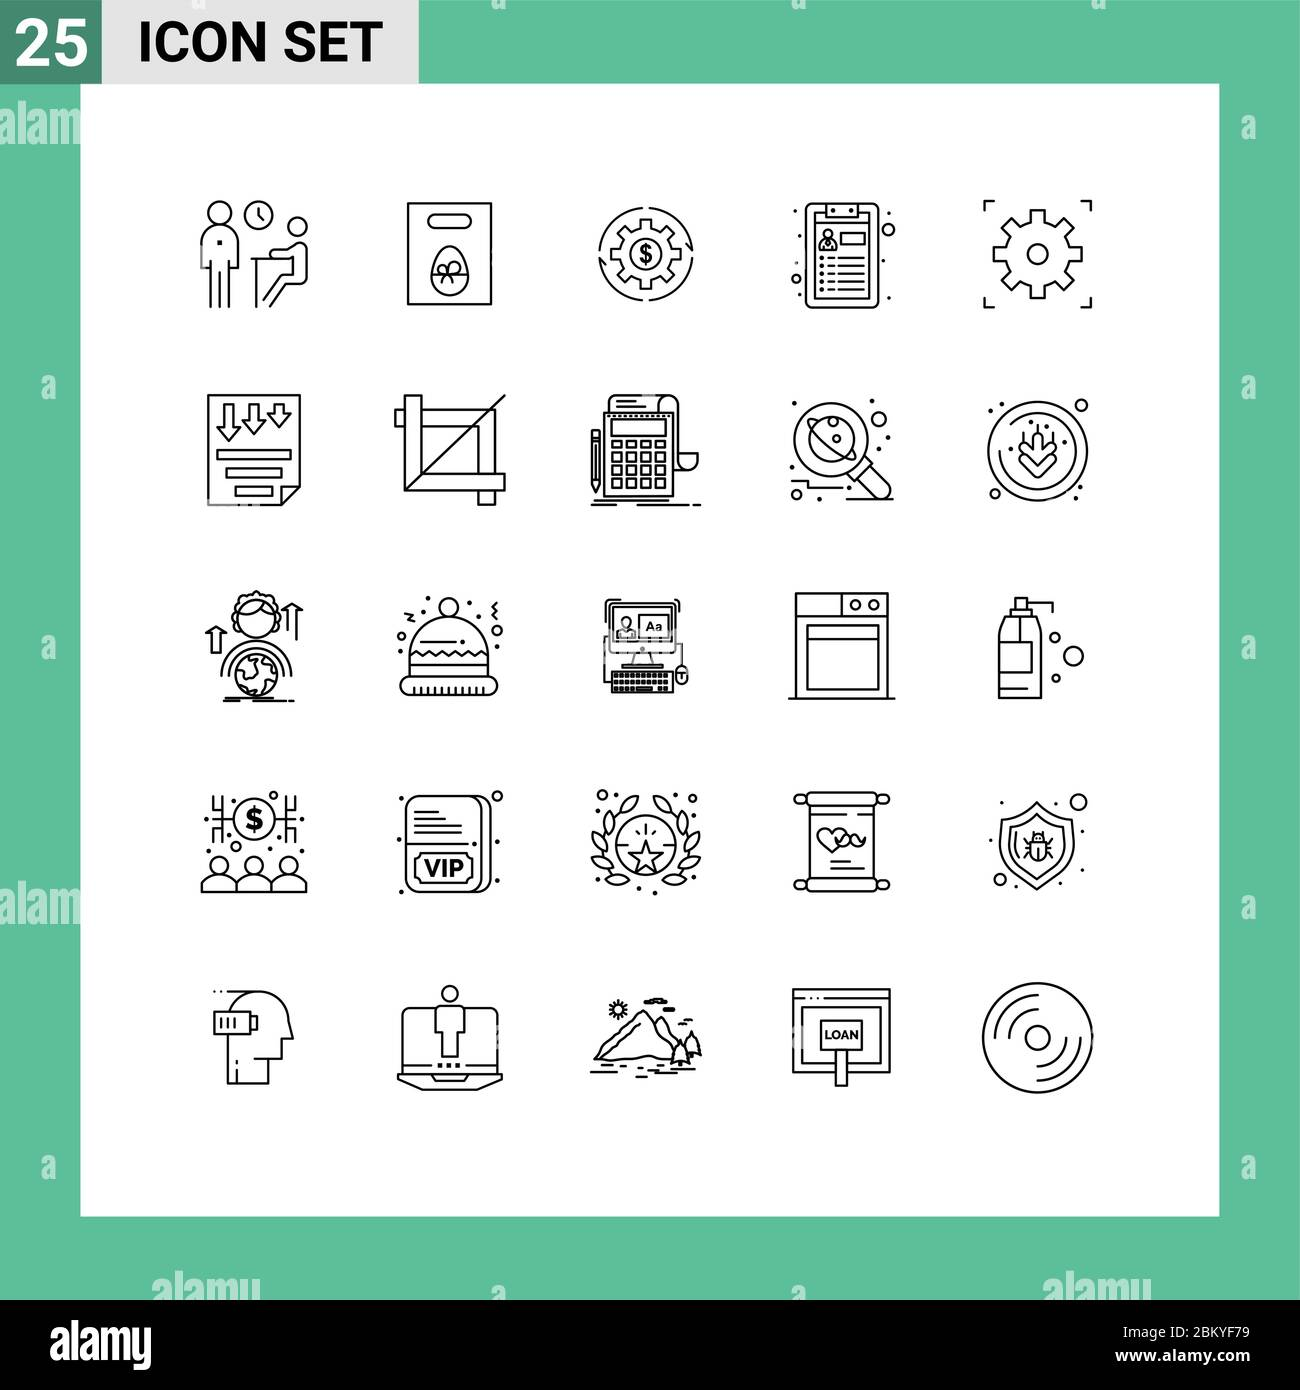 25 Thematic Vector Lines and Editable Symbols of job, profit, easter, money, make Editable Vector Design Elements Stock Vector